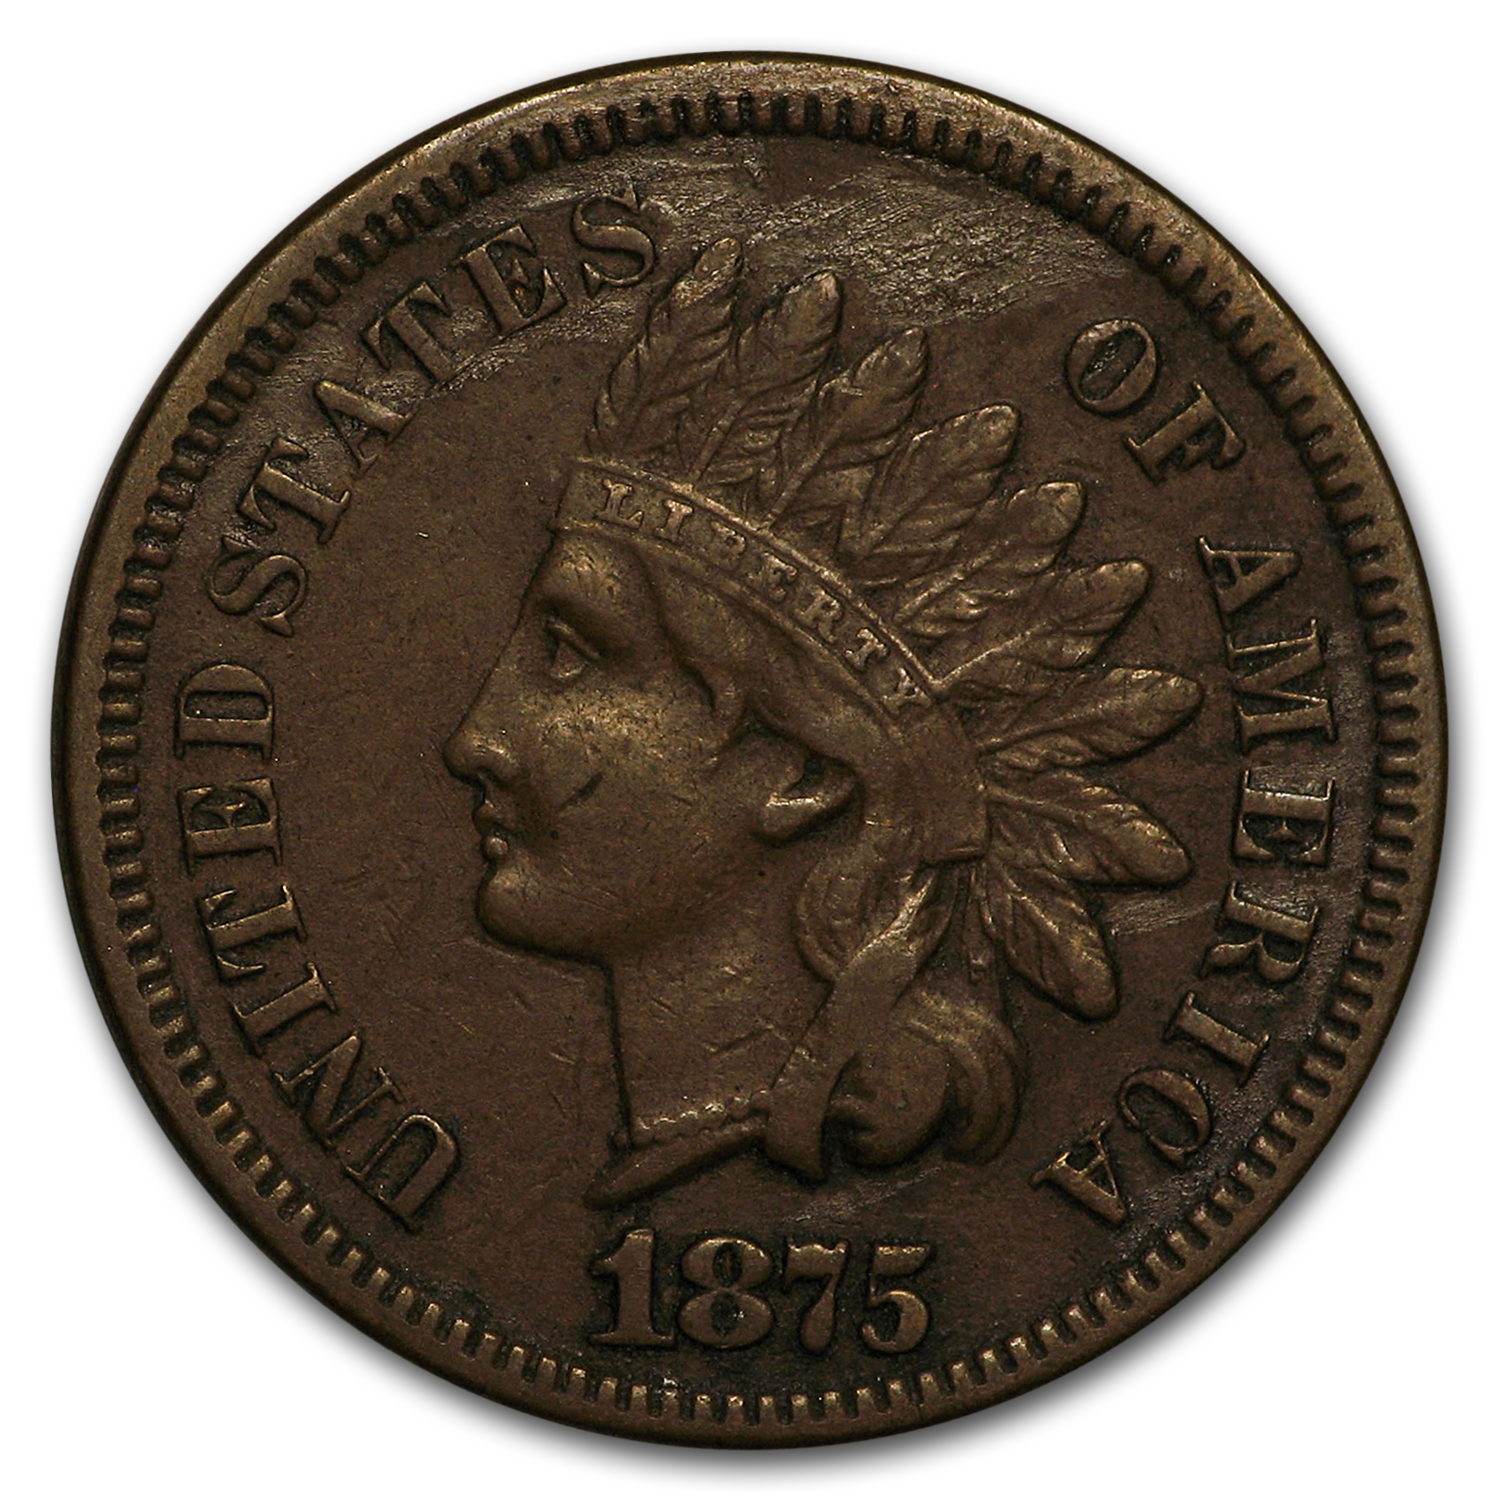 1875 Indian Head Cent VF